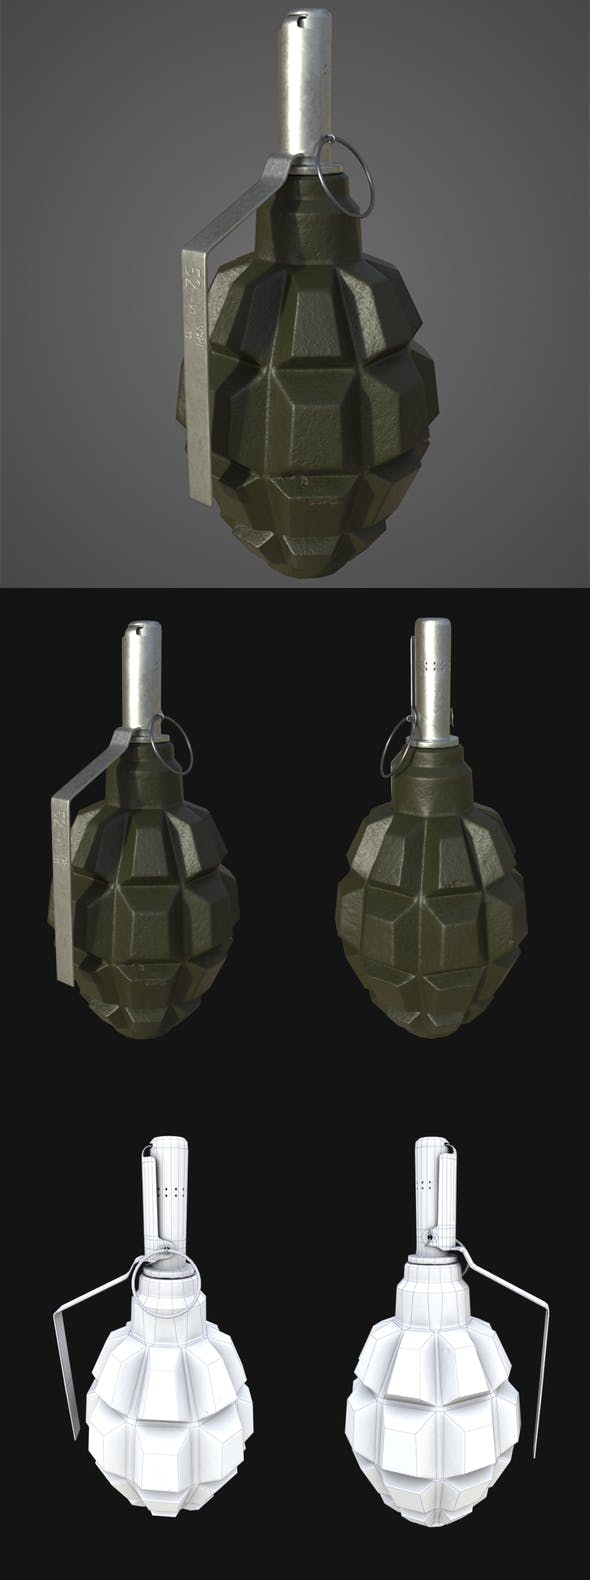 Low-Poly Grenade F-1 - 3DOcean Item for Sale